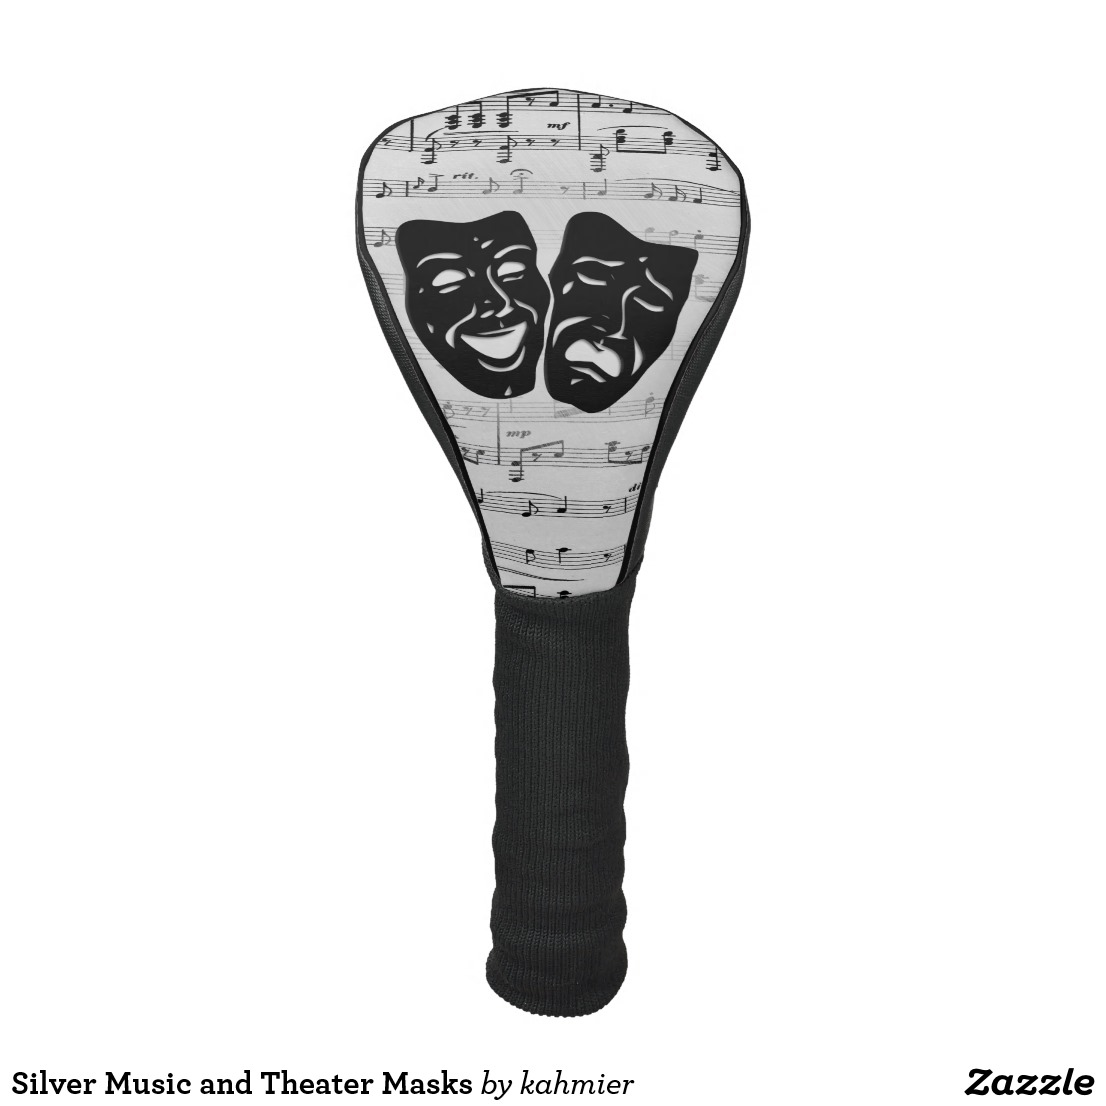 Silver Music and Theater Masks Golf Head Cover